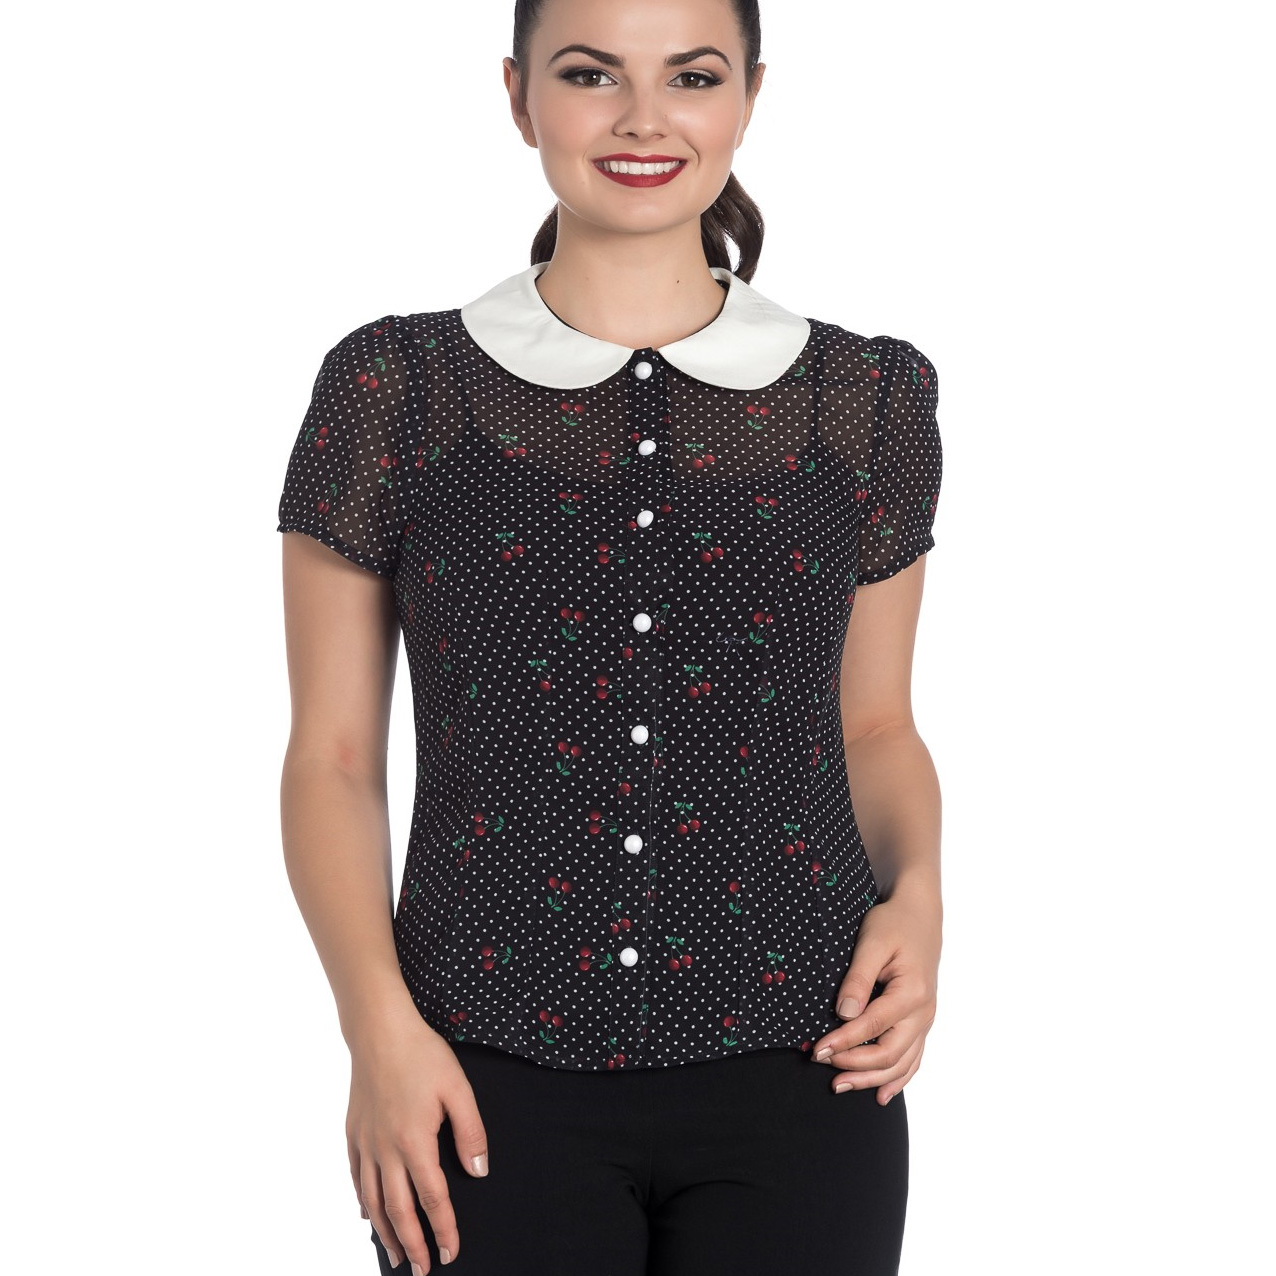 Hell-Bunny-Shirt-Top-Black-50s-Polka-Dot-SOPHIE-Blouse-Cherries-Cherry-All-Sizes thumbnail 3